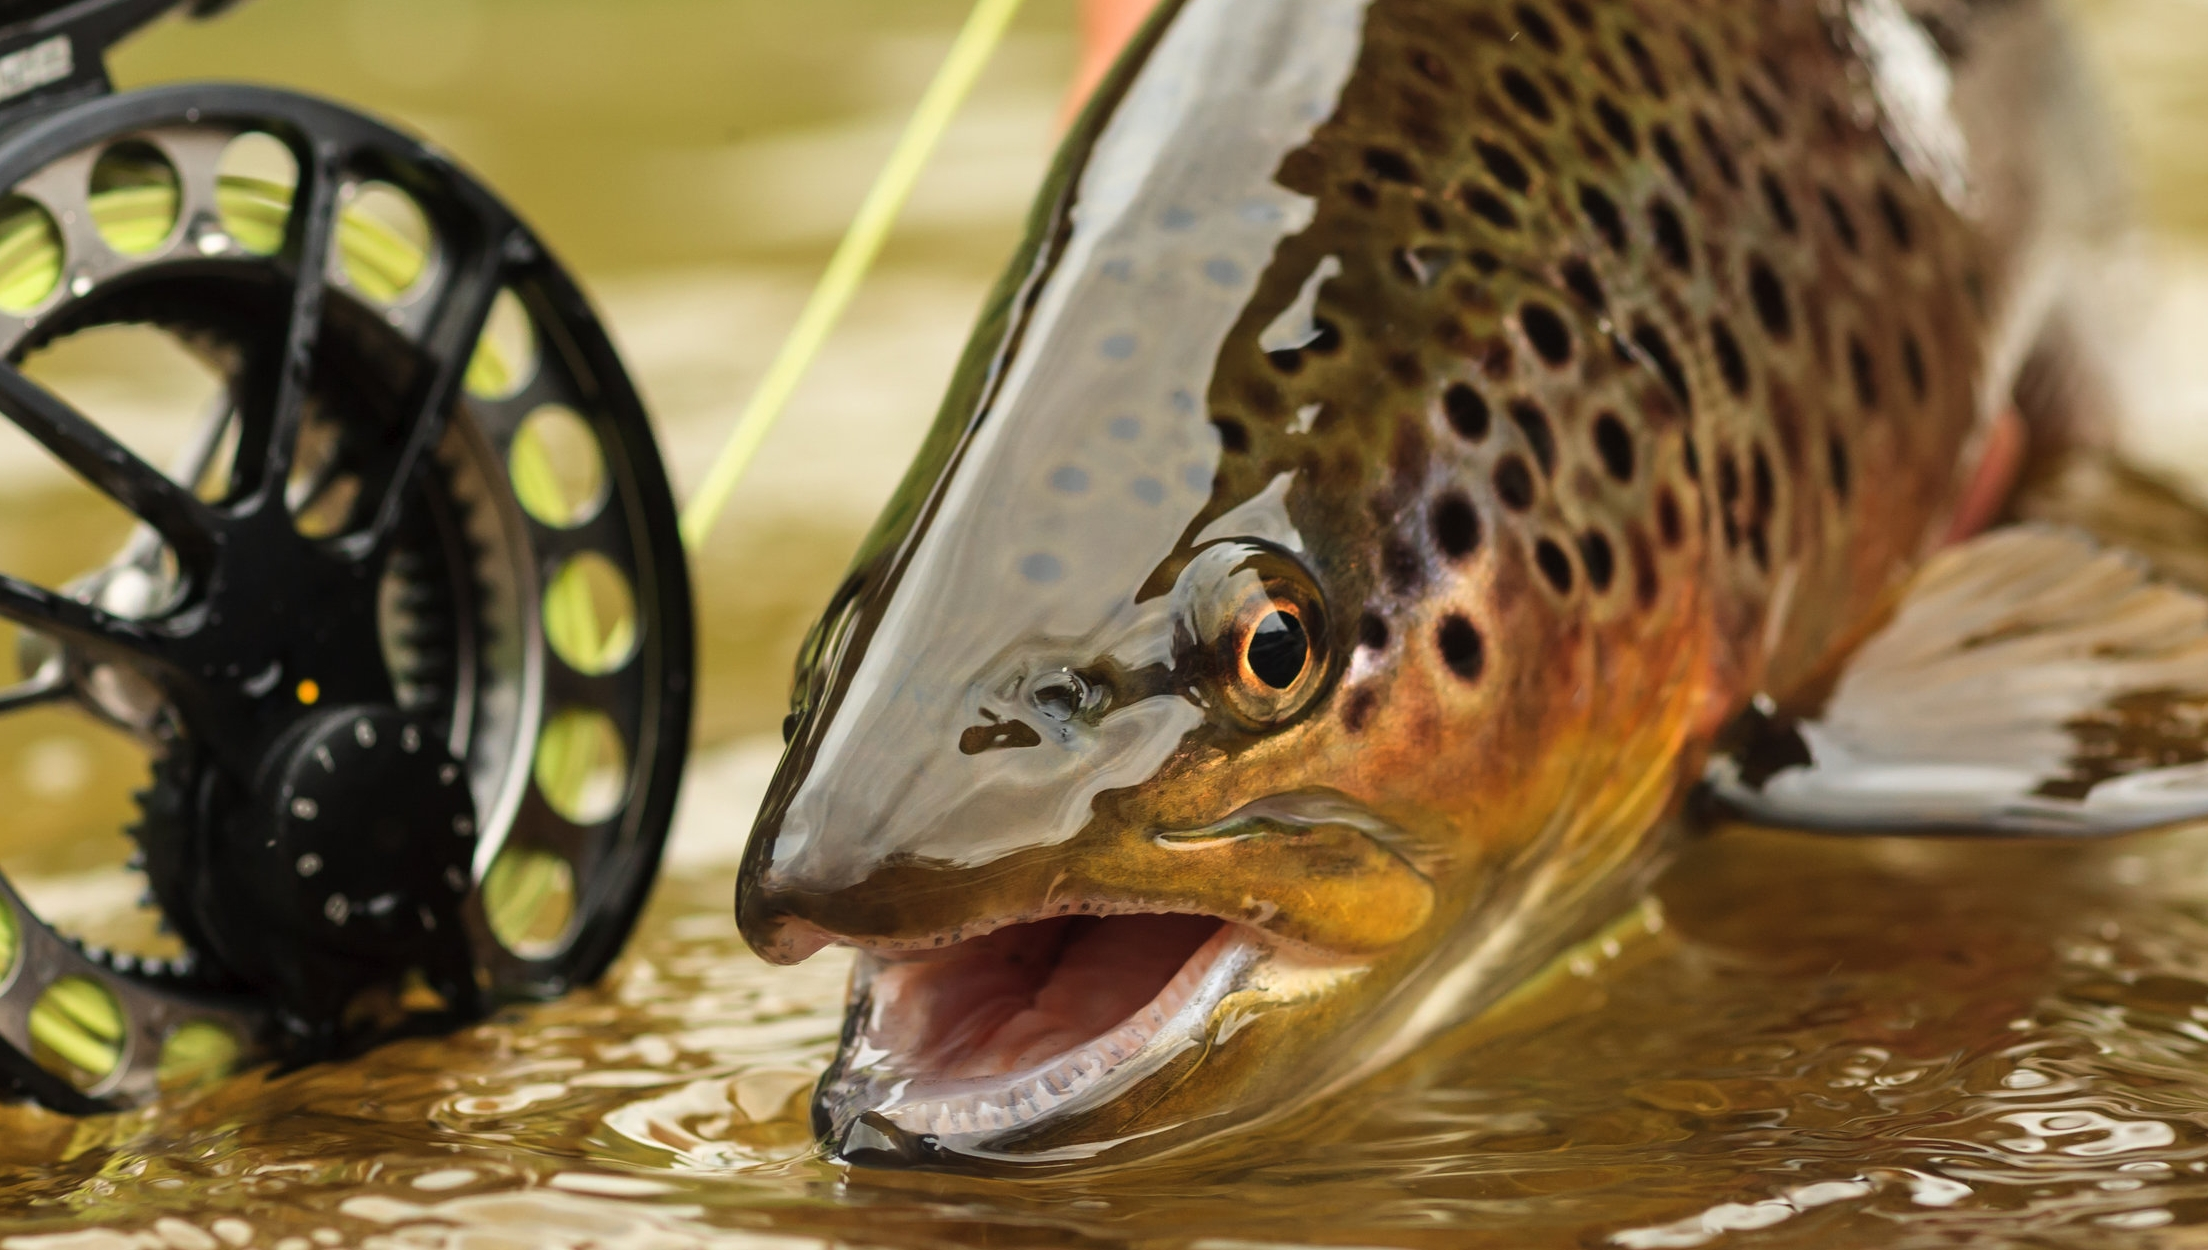 FISH - ANGLERS WILL BE DELIGHTED BY THE OPPORTUNITY TO CAST FOR TROPHY SIZE TROUT IN THE NEARBY PROVO AND WEBER RIVERS.